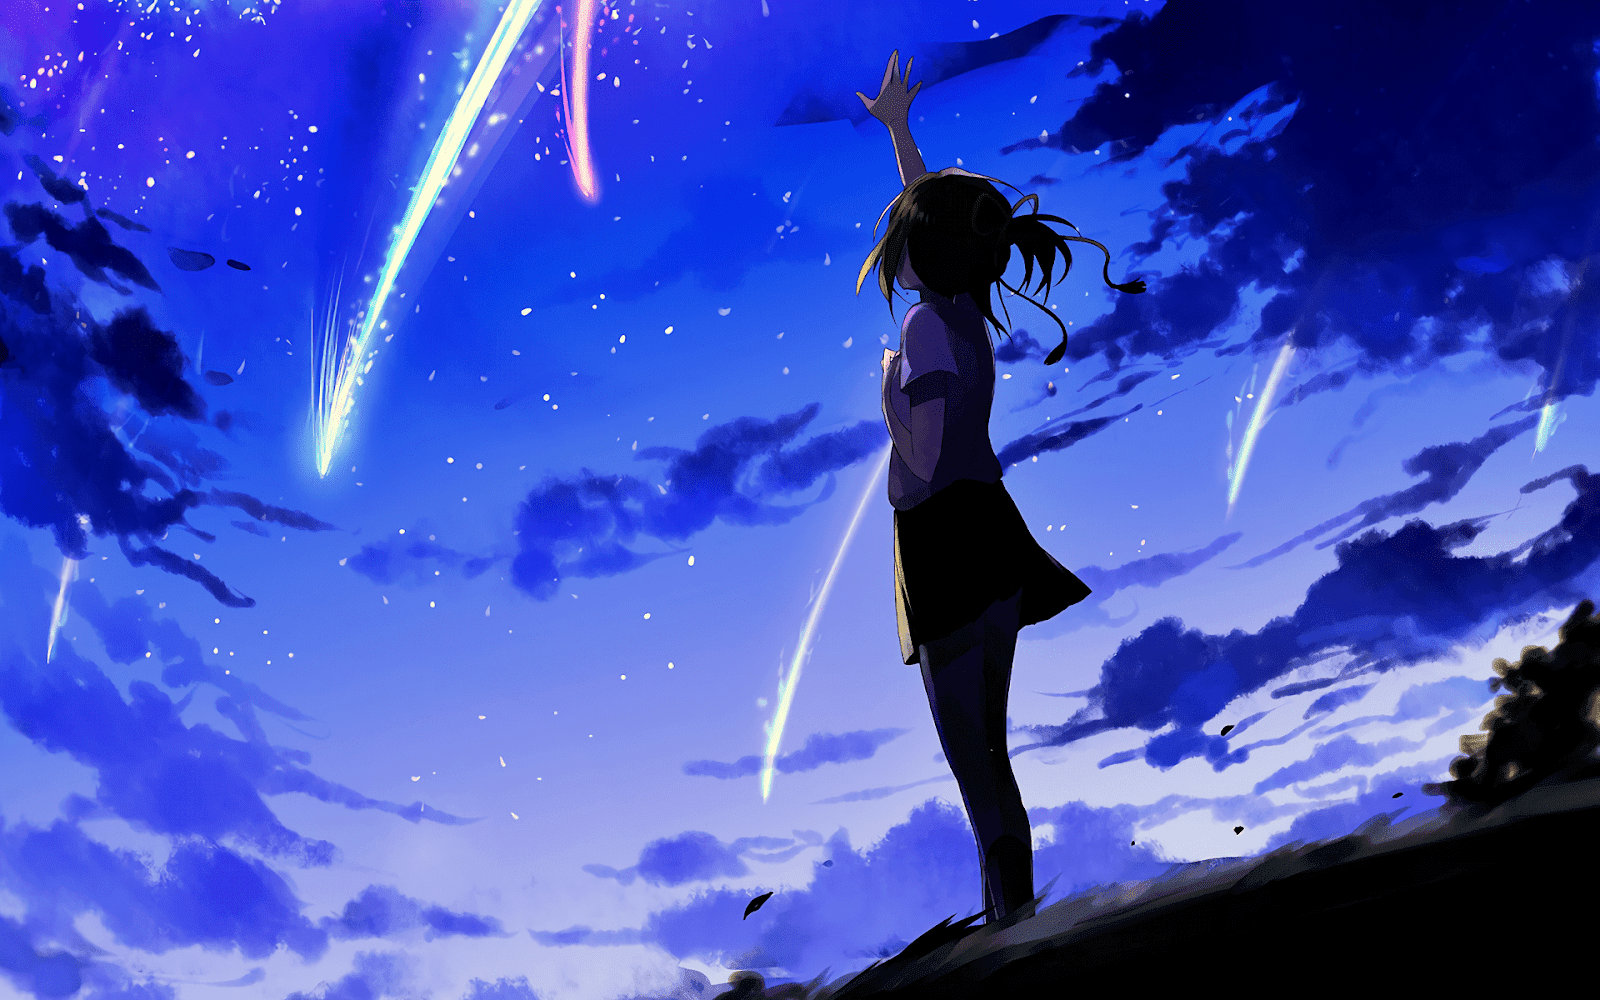 AowVN%2B%25288%2529 - [ Hình Nền ] Anime Your Name. - Kimi no Nawa full HD cực đẹp | Anime Wallpaper